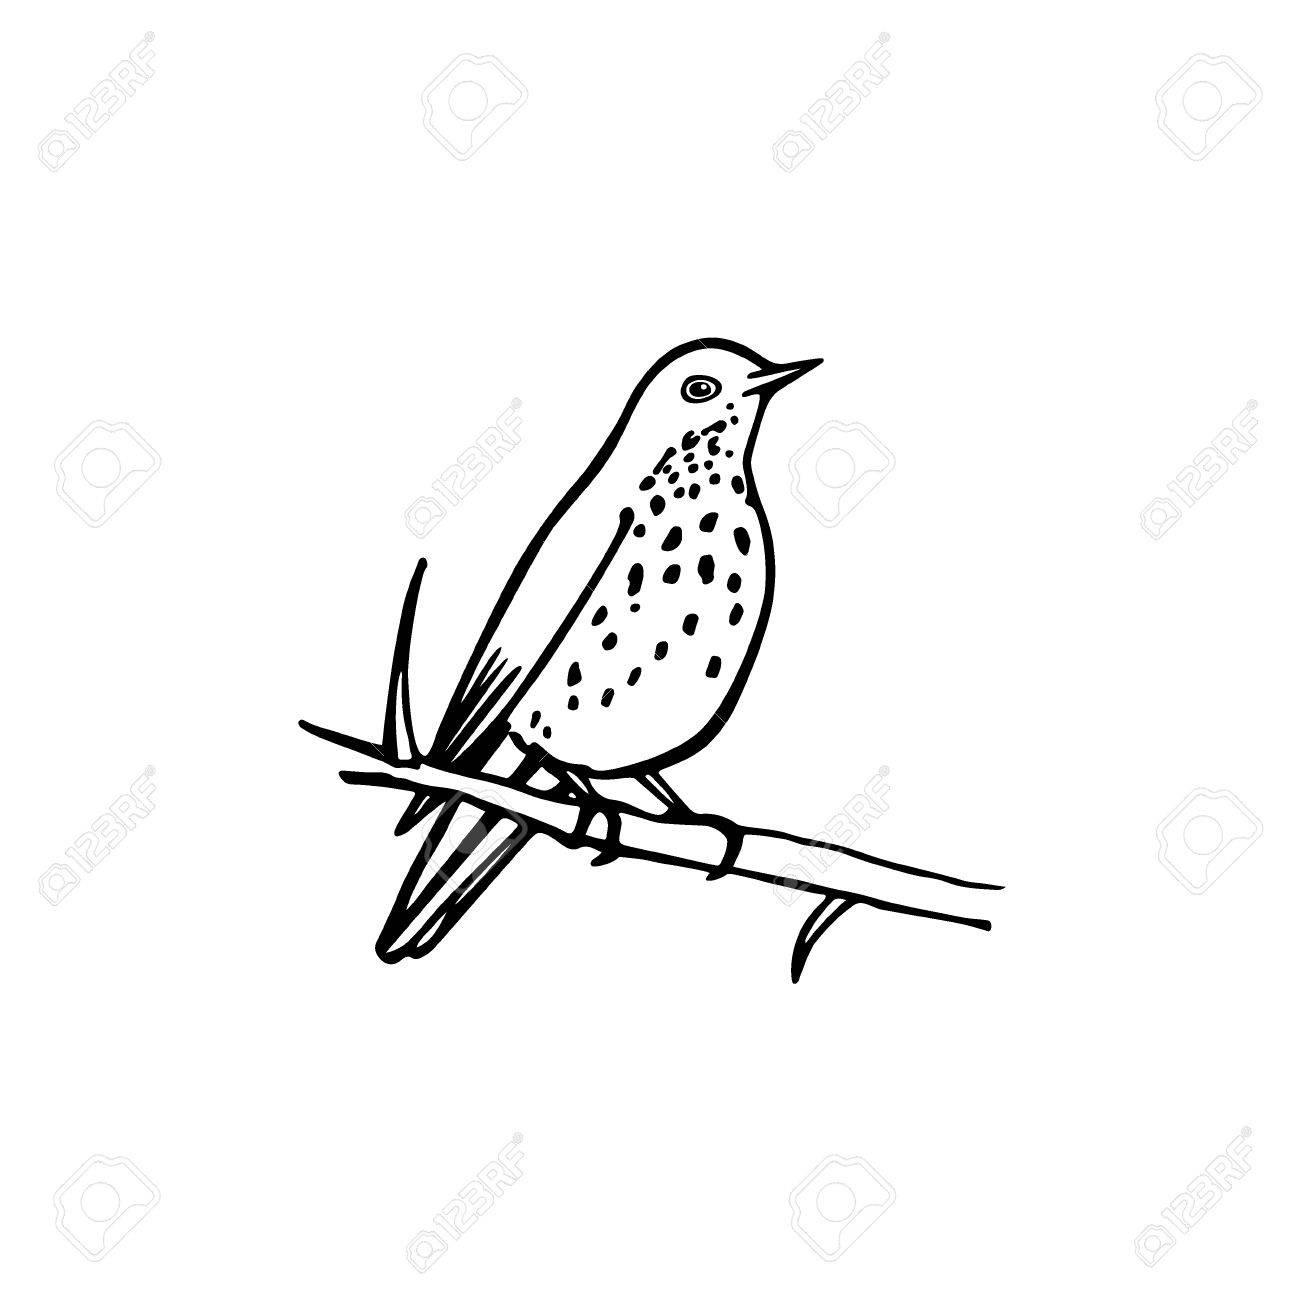 Vector Illustration Of Hand Drawn North America Bird Sitting Royalty Free Cliparts Vectors And Stock Illustration Image 68183792